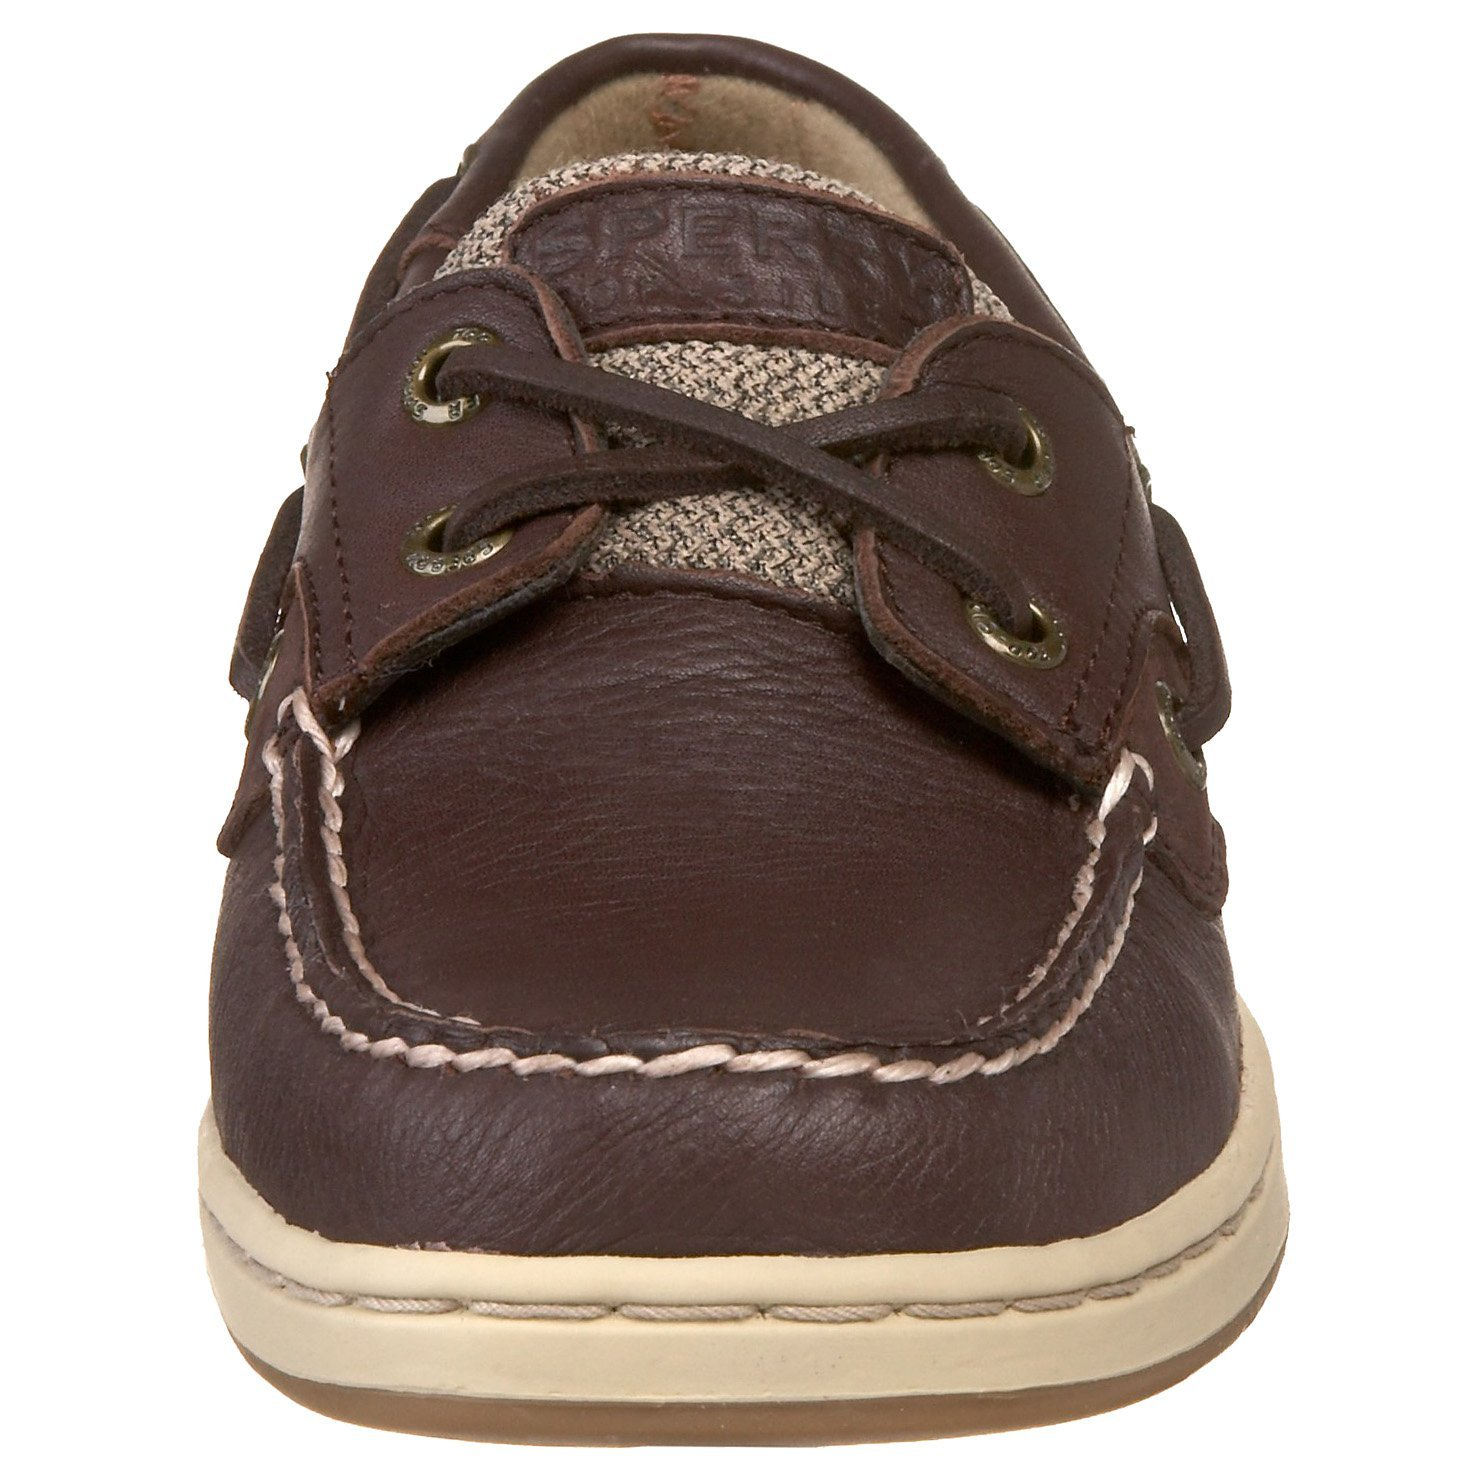 Womens Sperry Top Sider Bluefish Boat Shoe Brown Tan